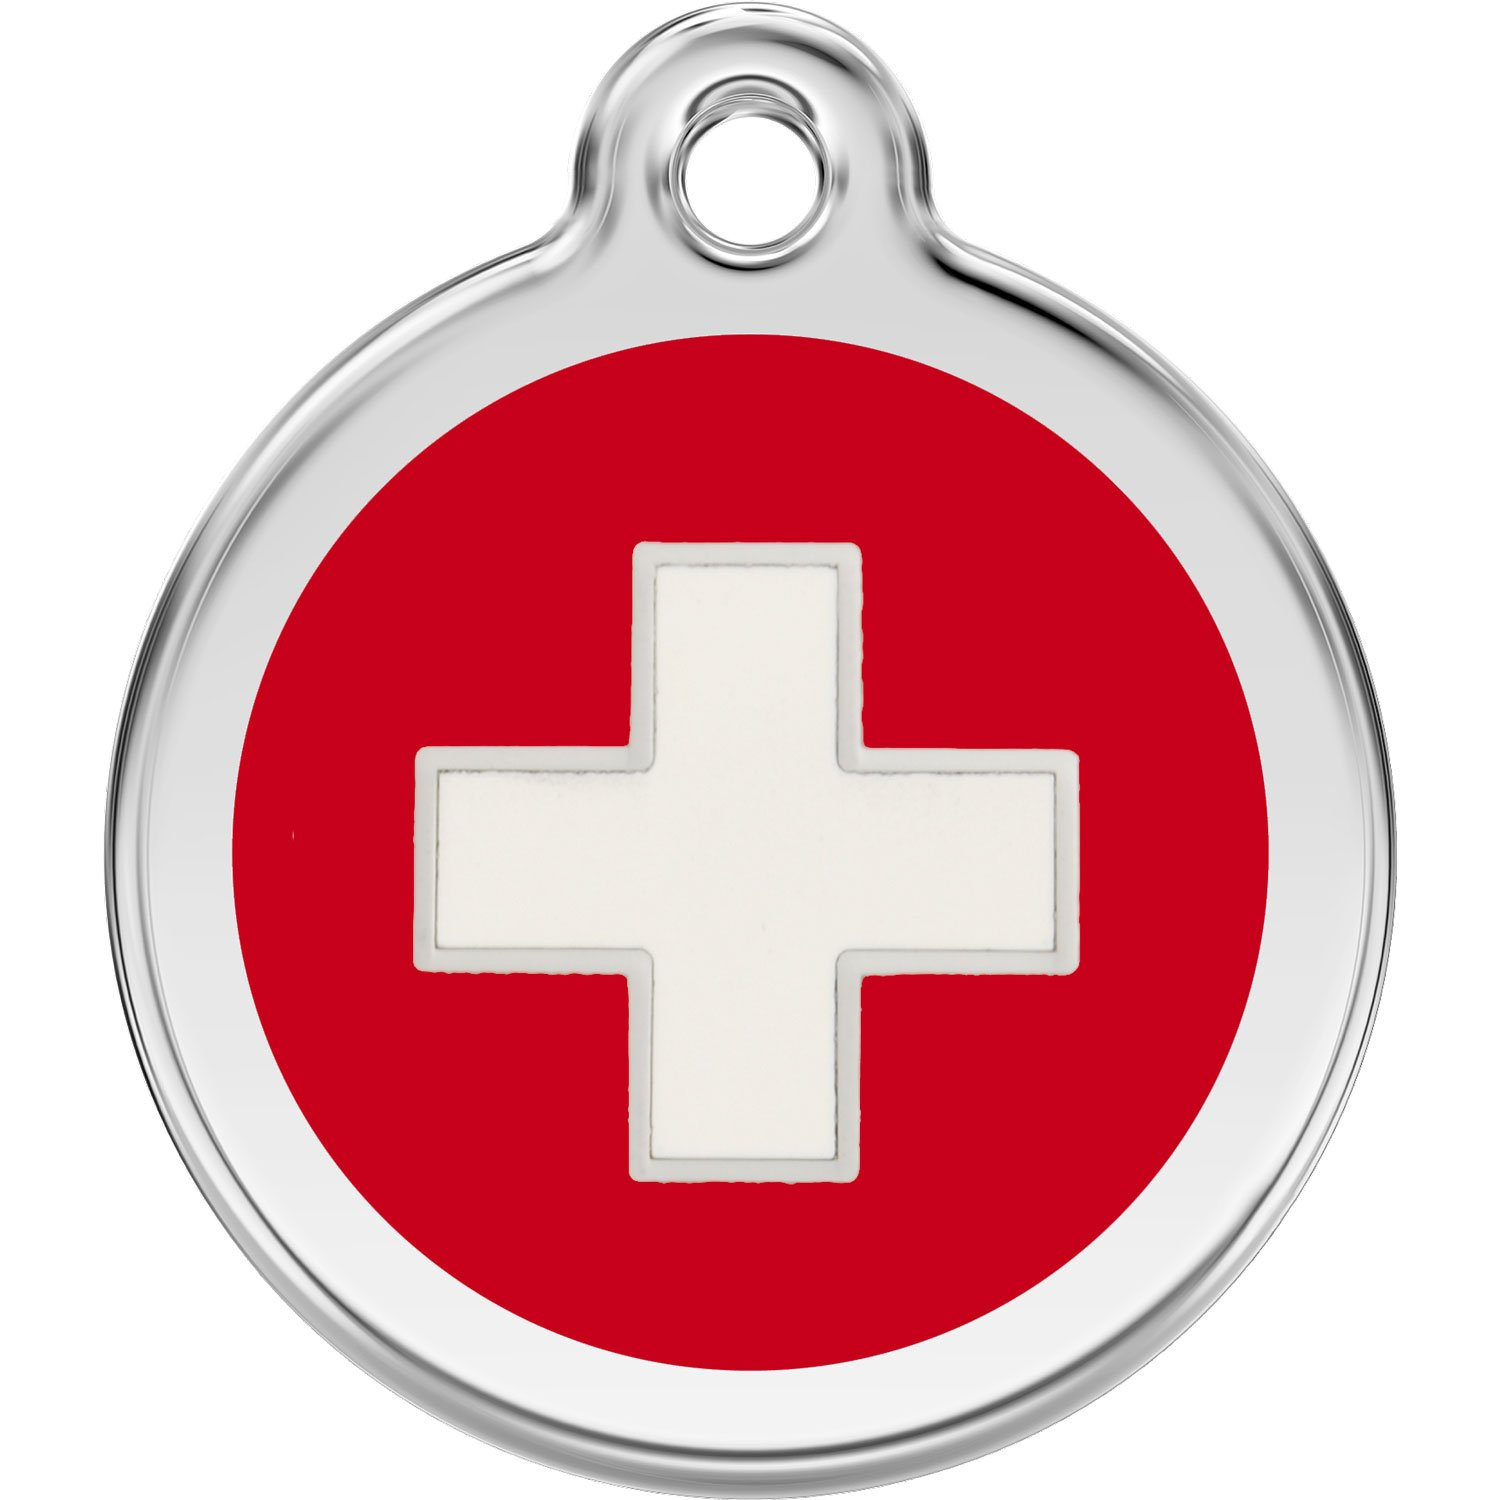 Red Dingo Personalized Swiss Cross Pet ID Dog Tag (Large)